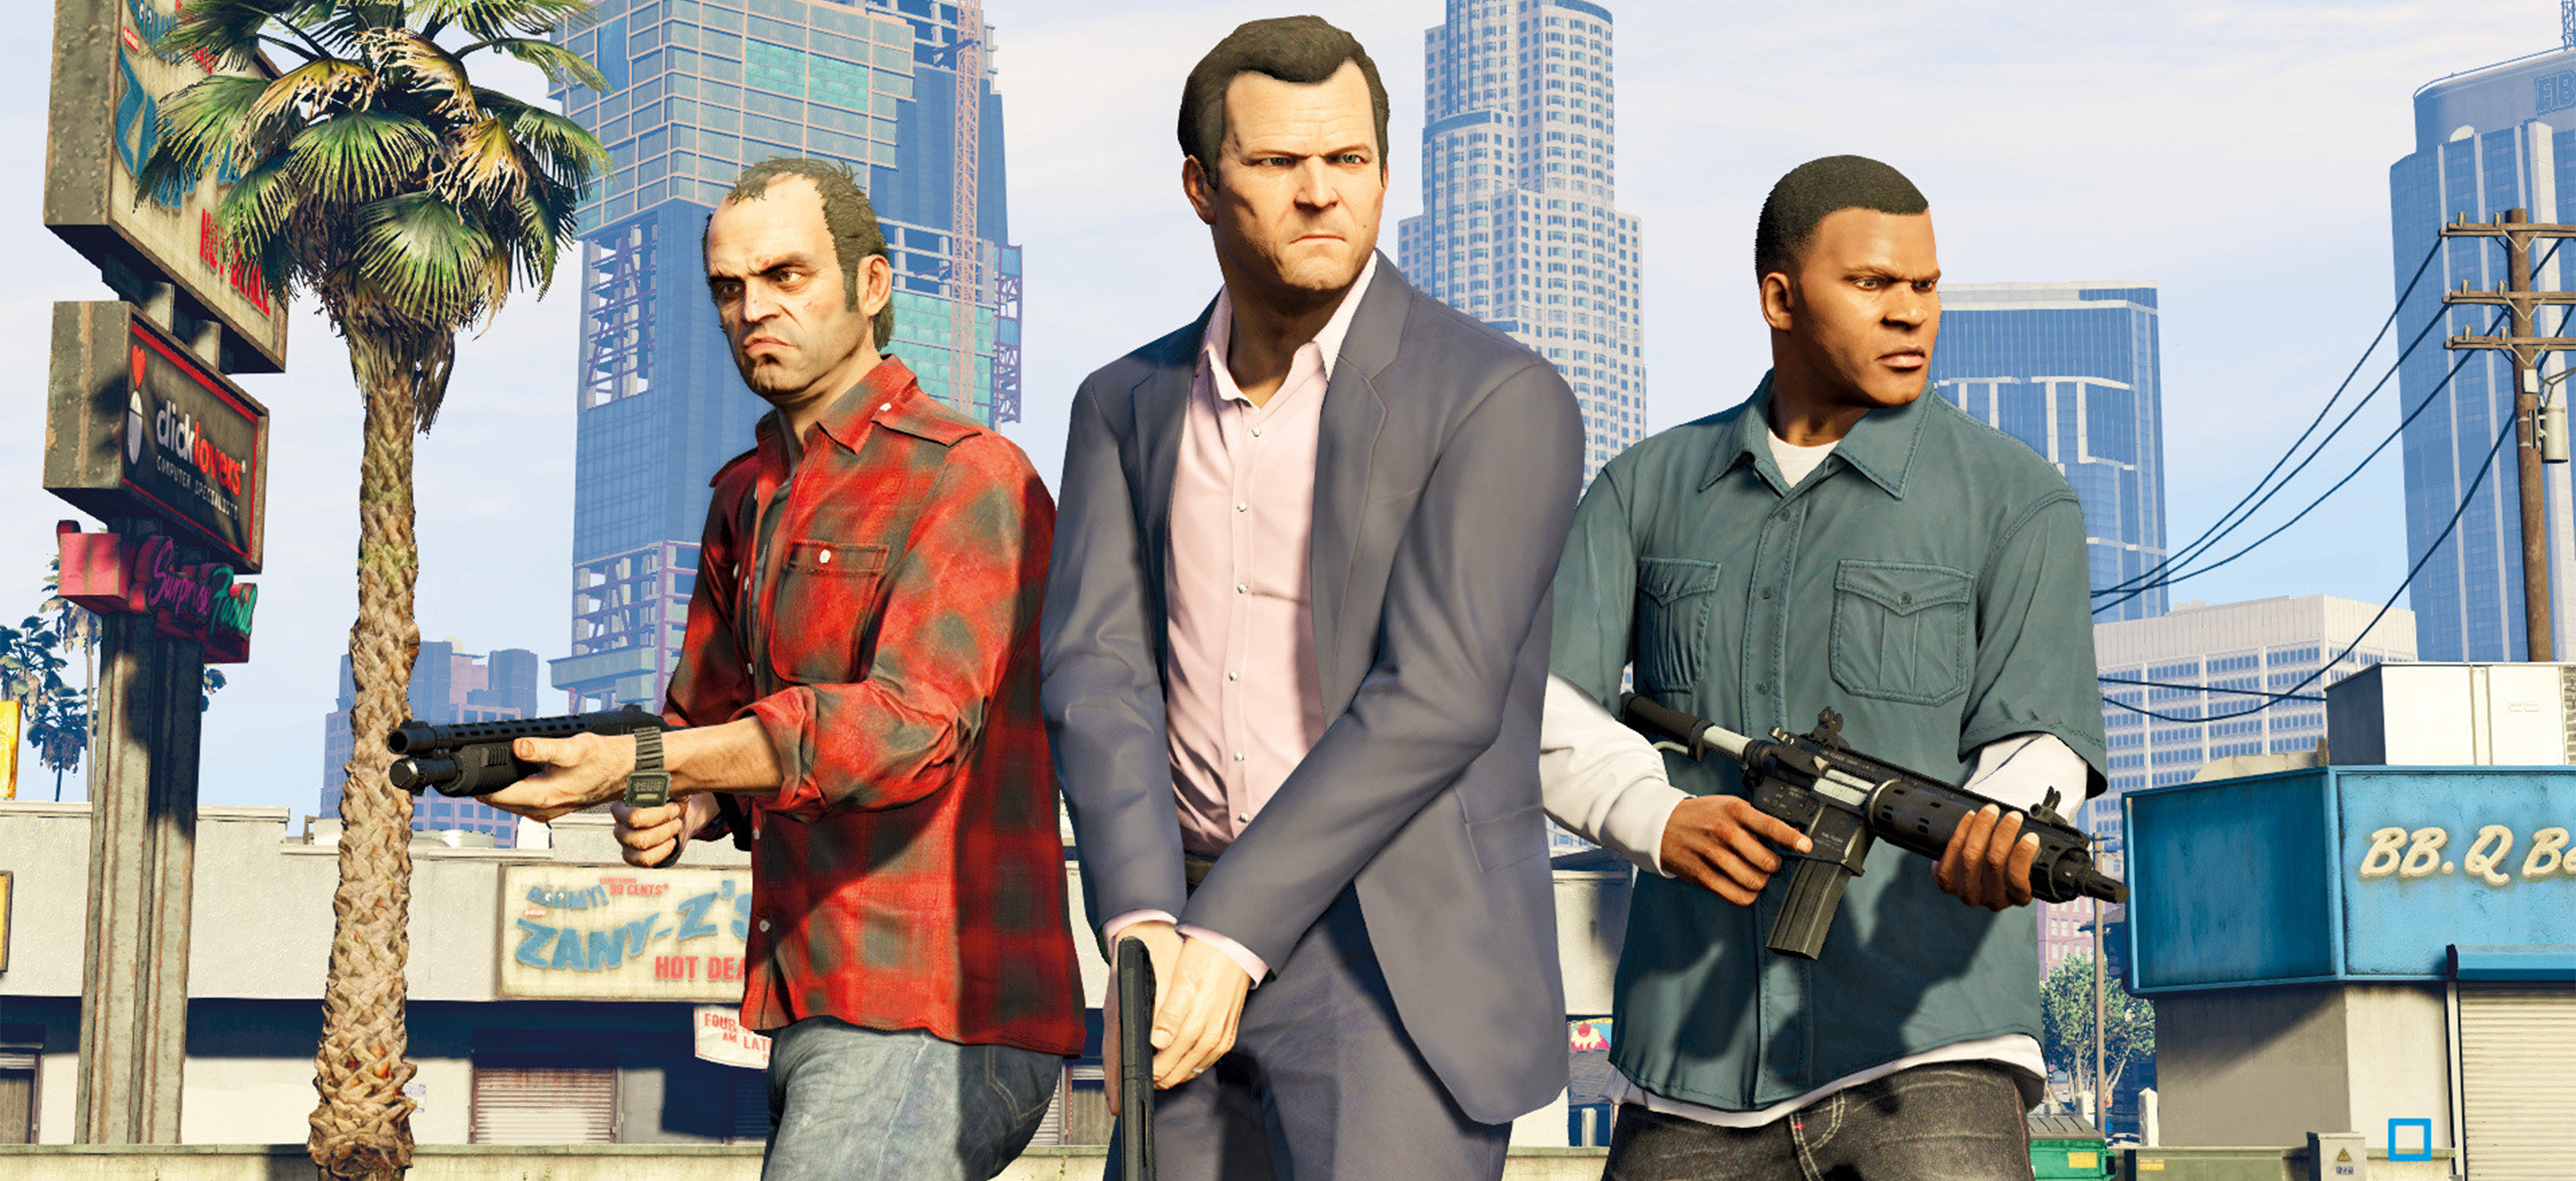 https://www.micromania.fr/on/demandware.static/-/Sites-Micromania-Library/default/dw8fced587/fanzone/dossier/gta/GTAOnline_Header.png